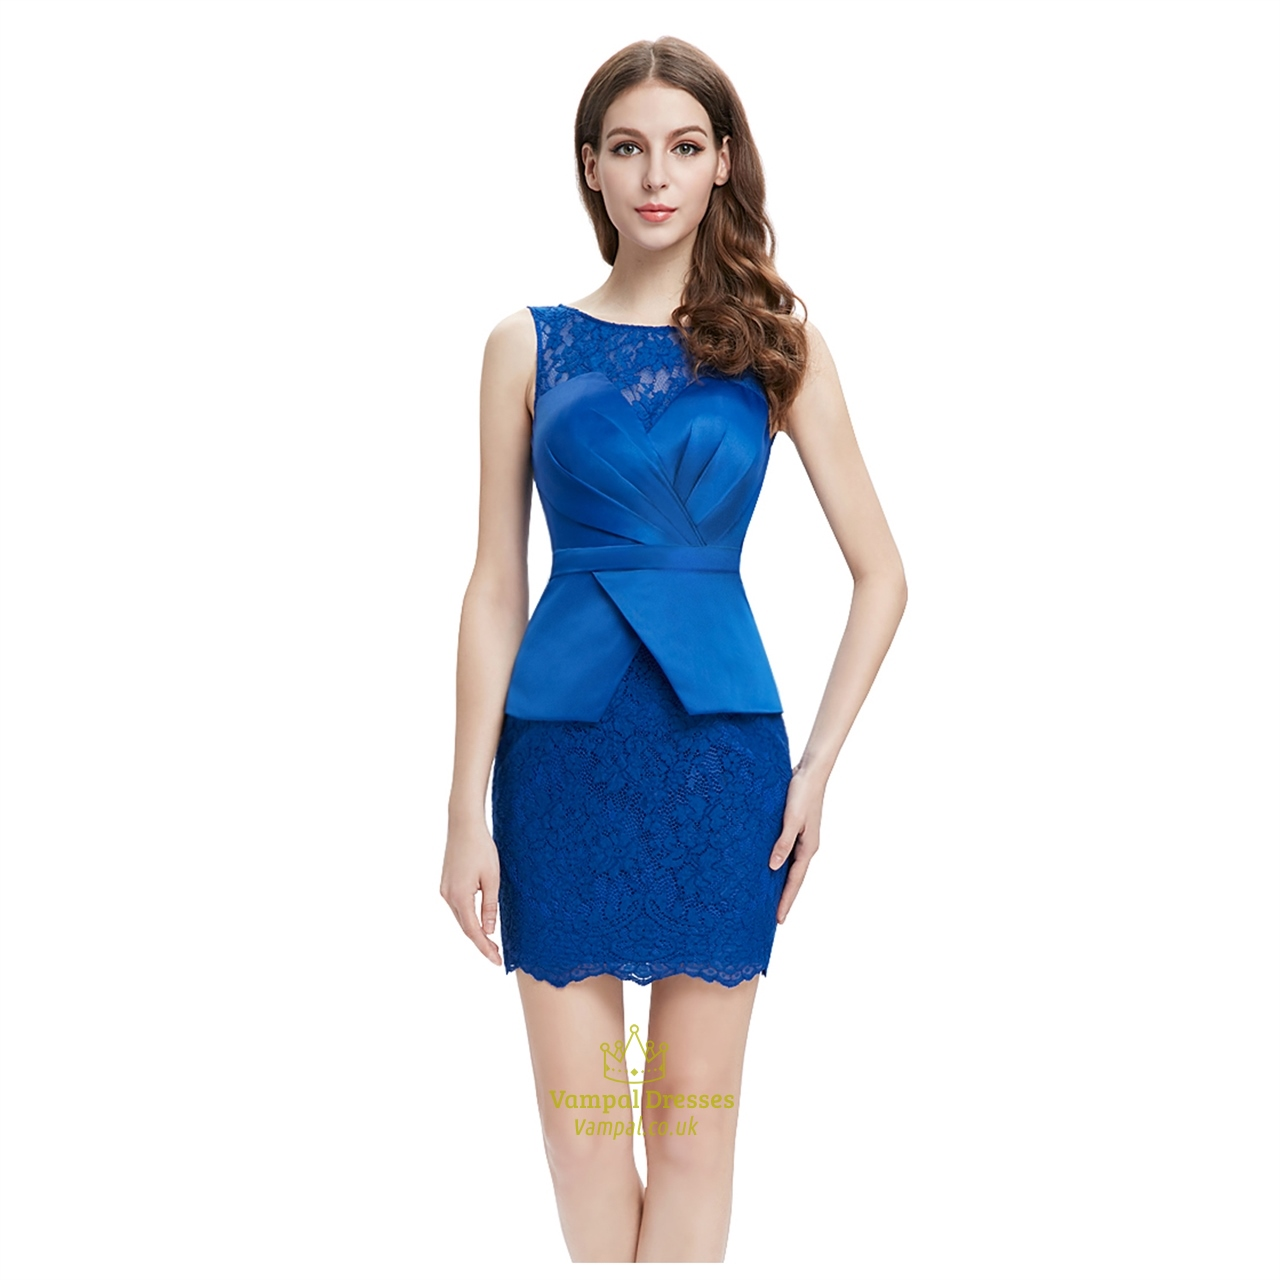 b41619292fb Royal Blue Lace Embellished Peplum Pencil Dress With Illusion Neckline SKU  -AP015